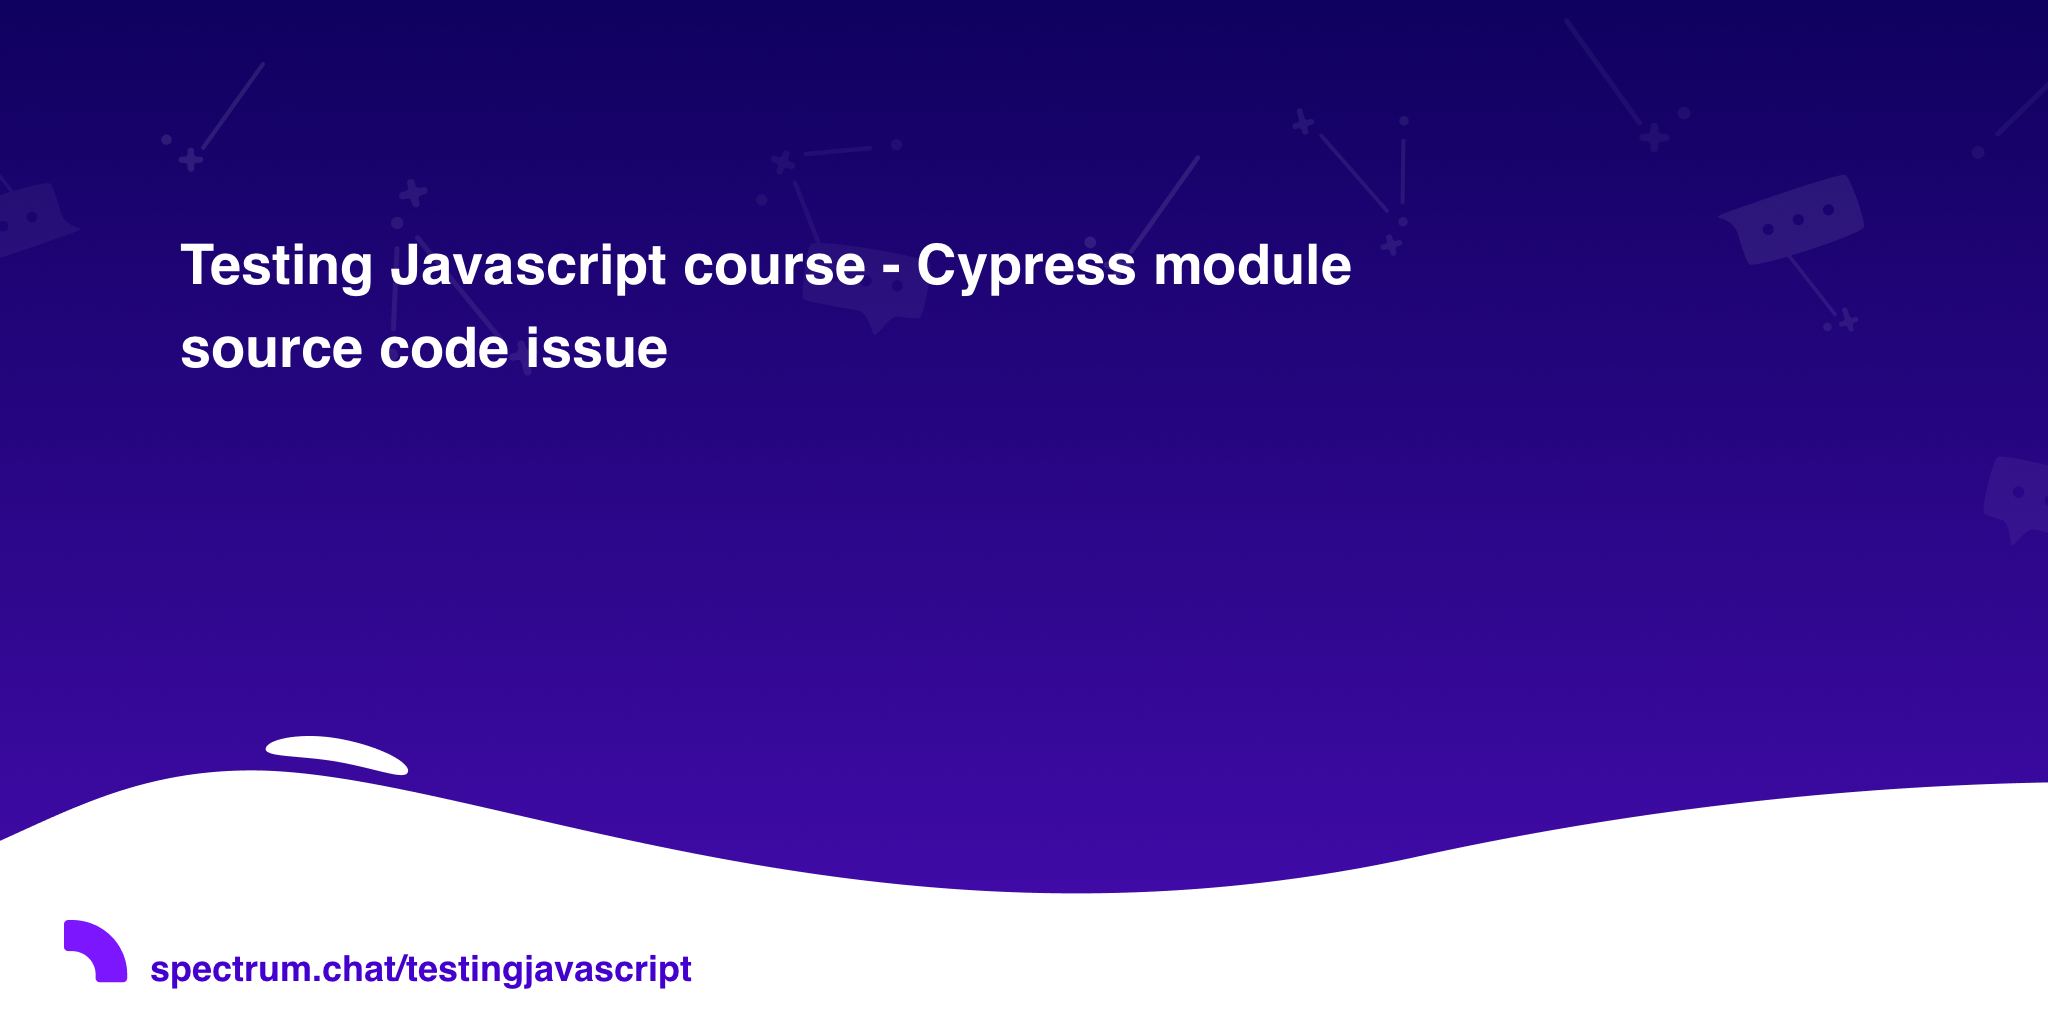 Testing Javascript course - Cypress module source code issue